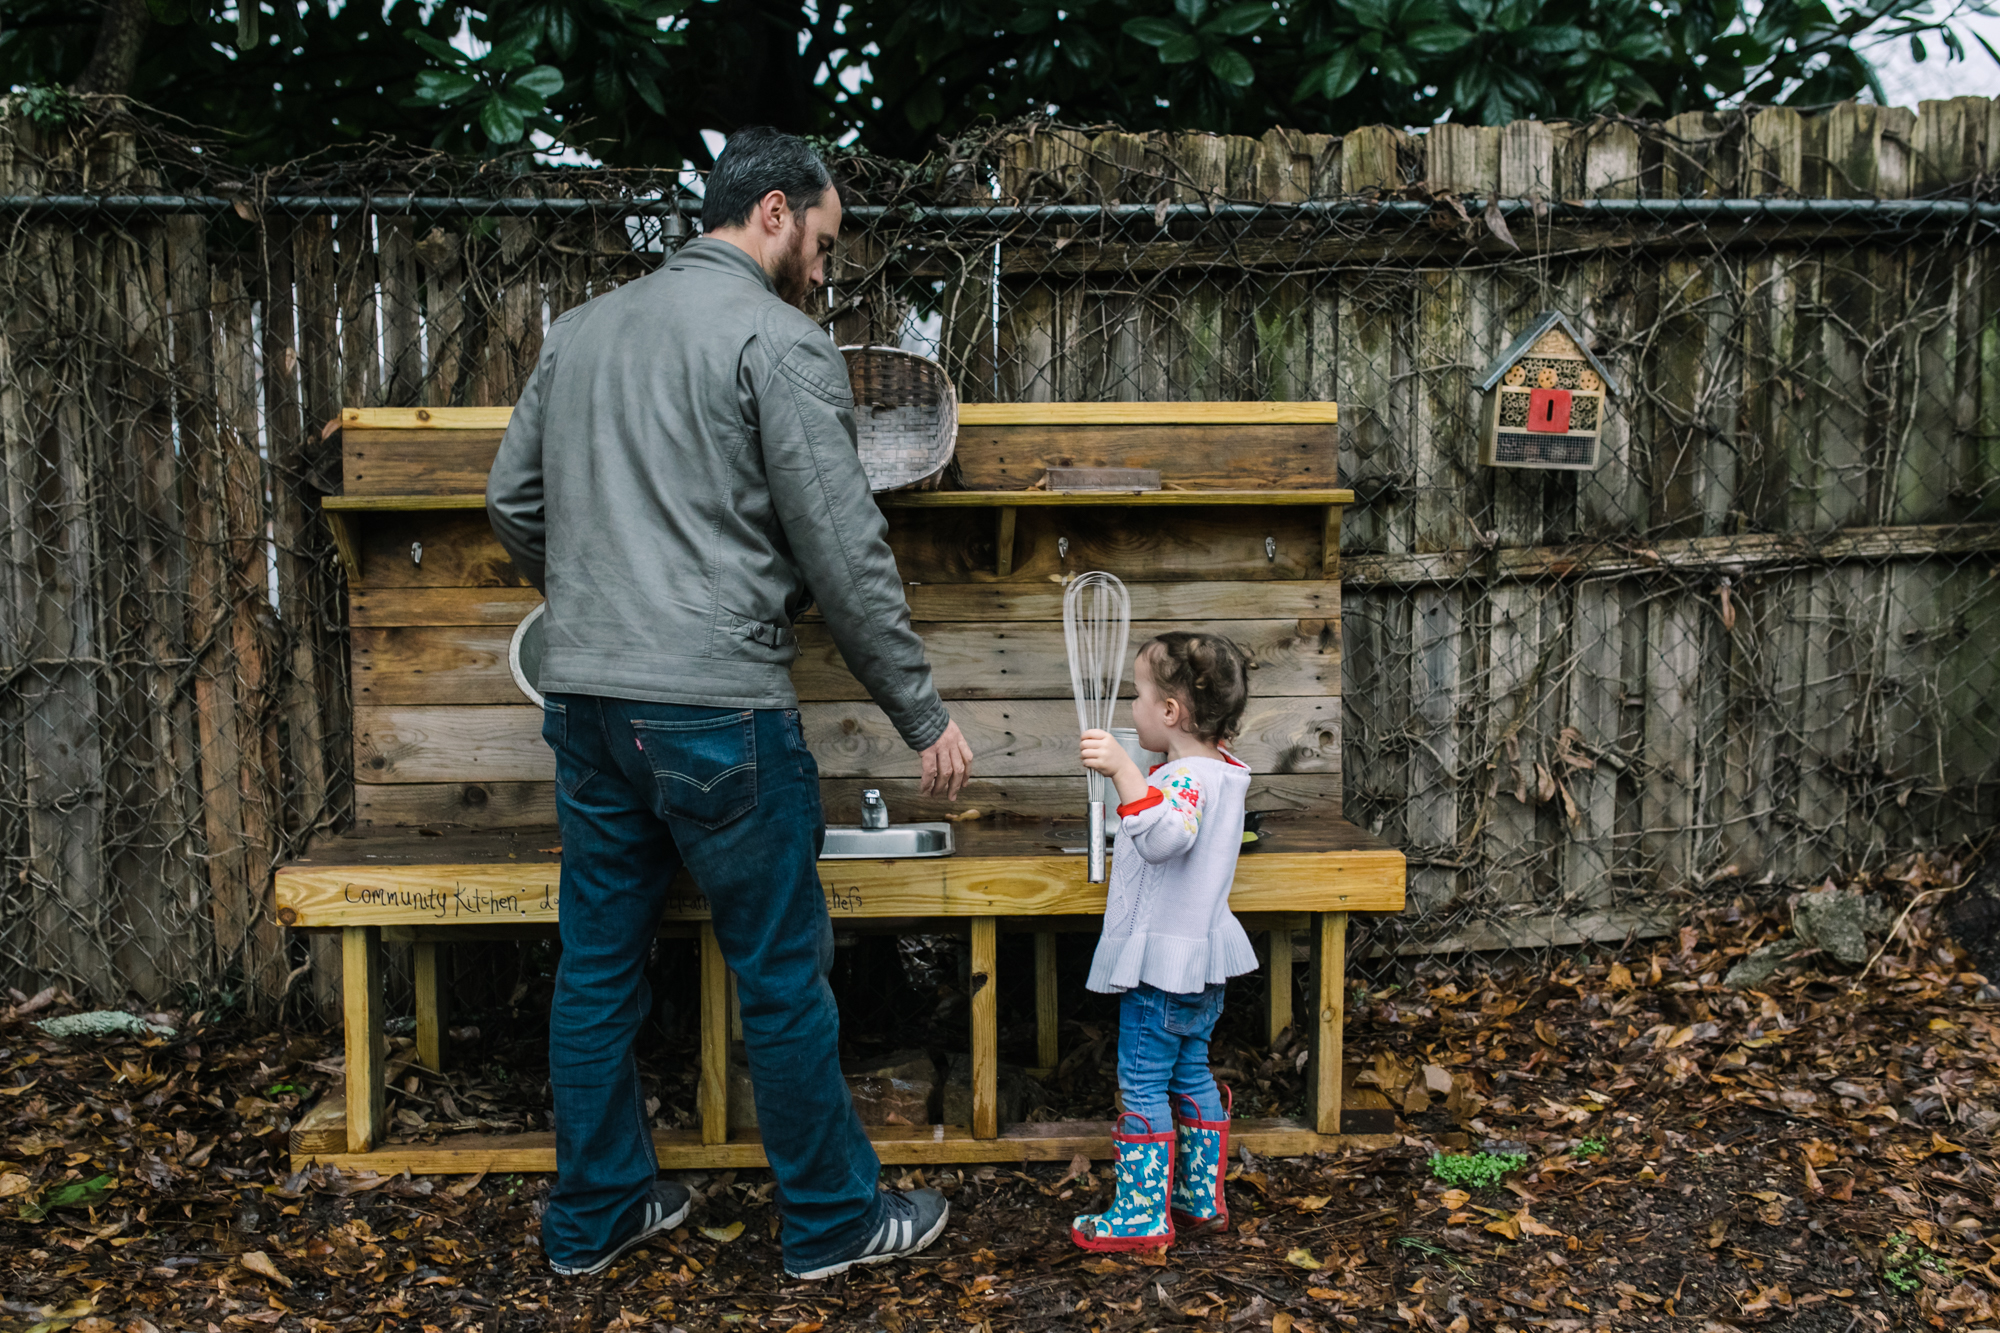 A father and daughter play at an outdoor play kitchen